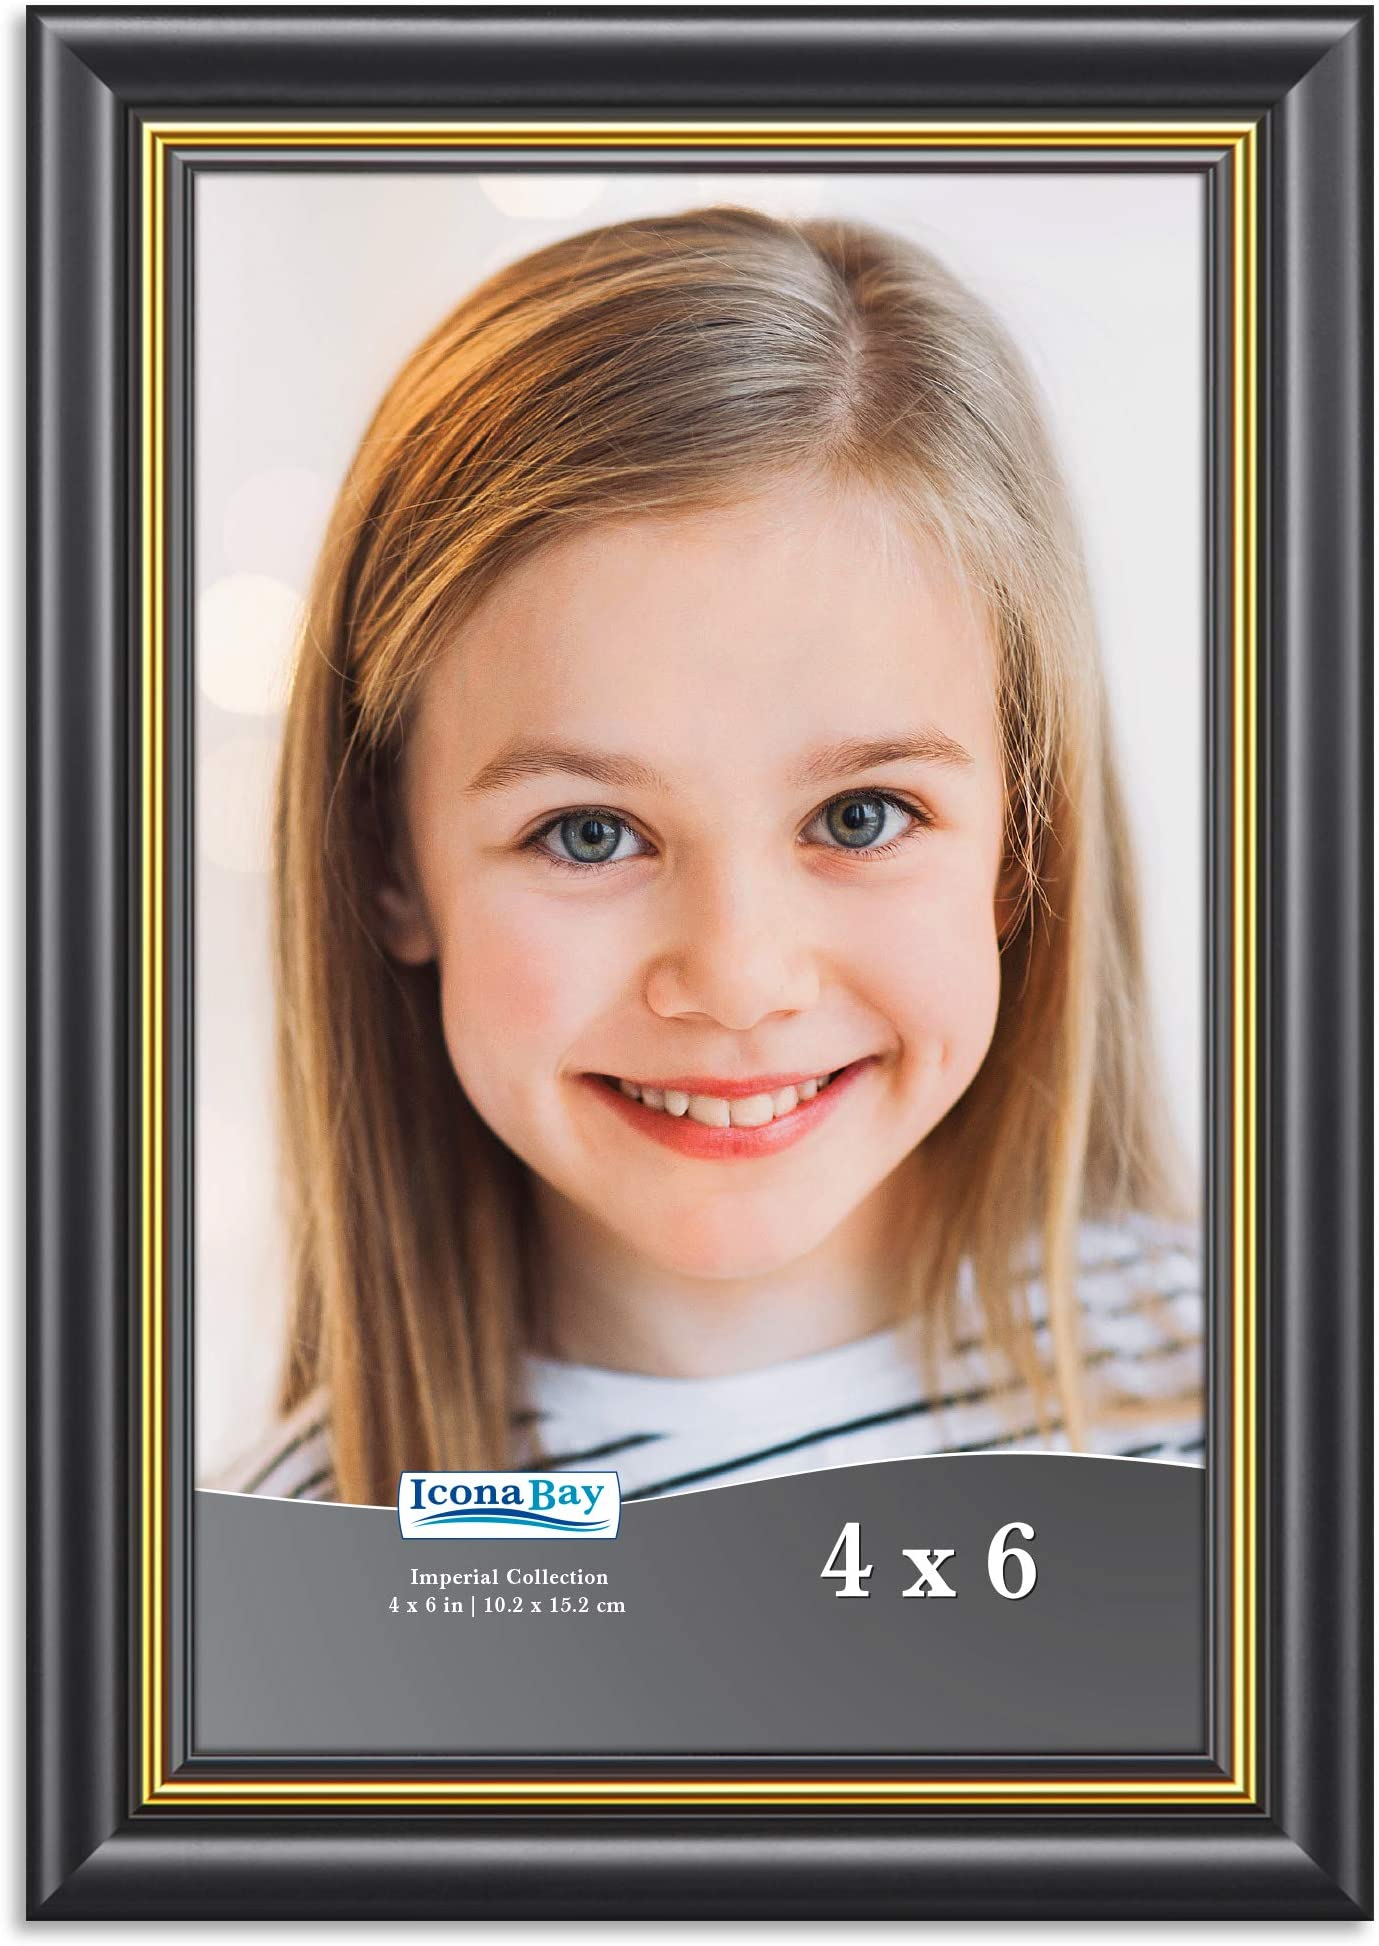 Multi Aperture Picture Frames Fits 12 7 x 5 Inches Photos Landscape Photo Framed White Mount 6 Frame Colour Choices